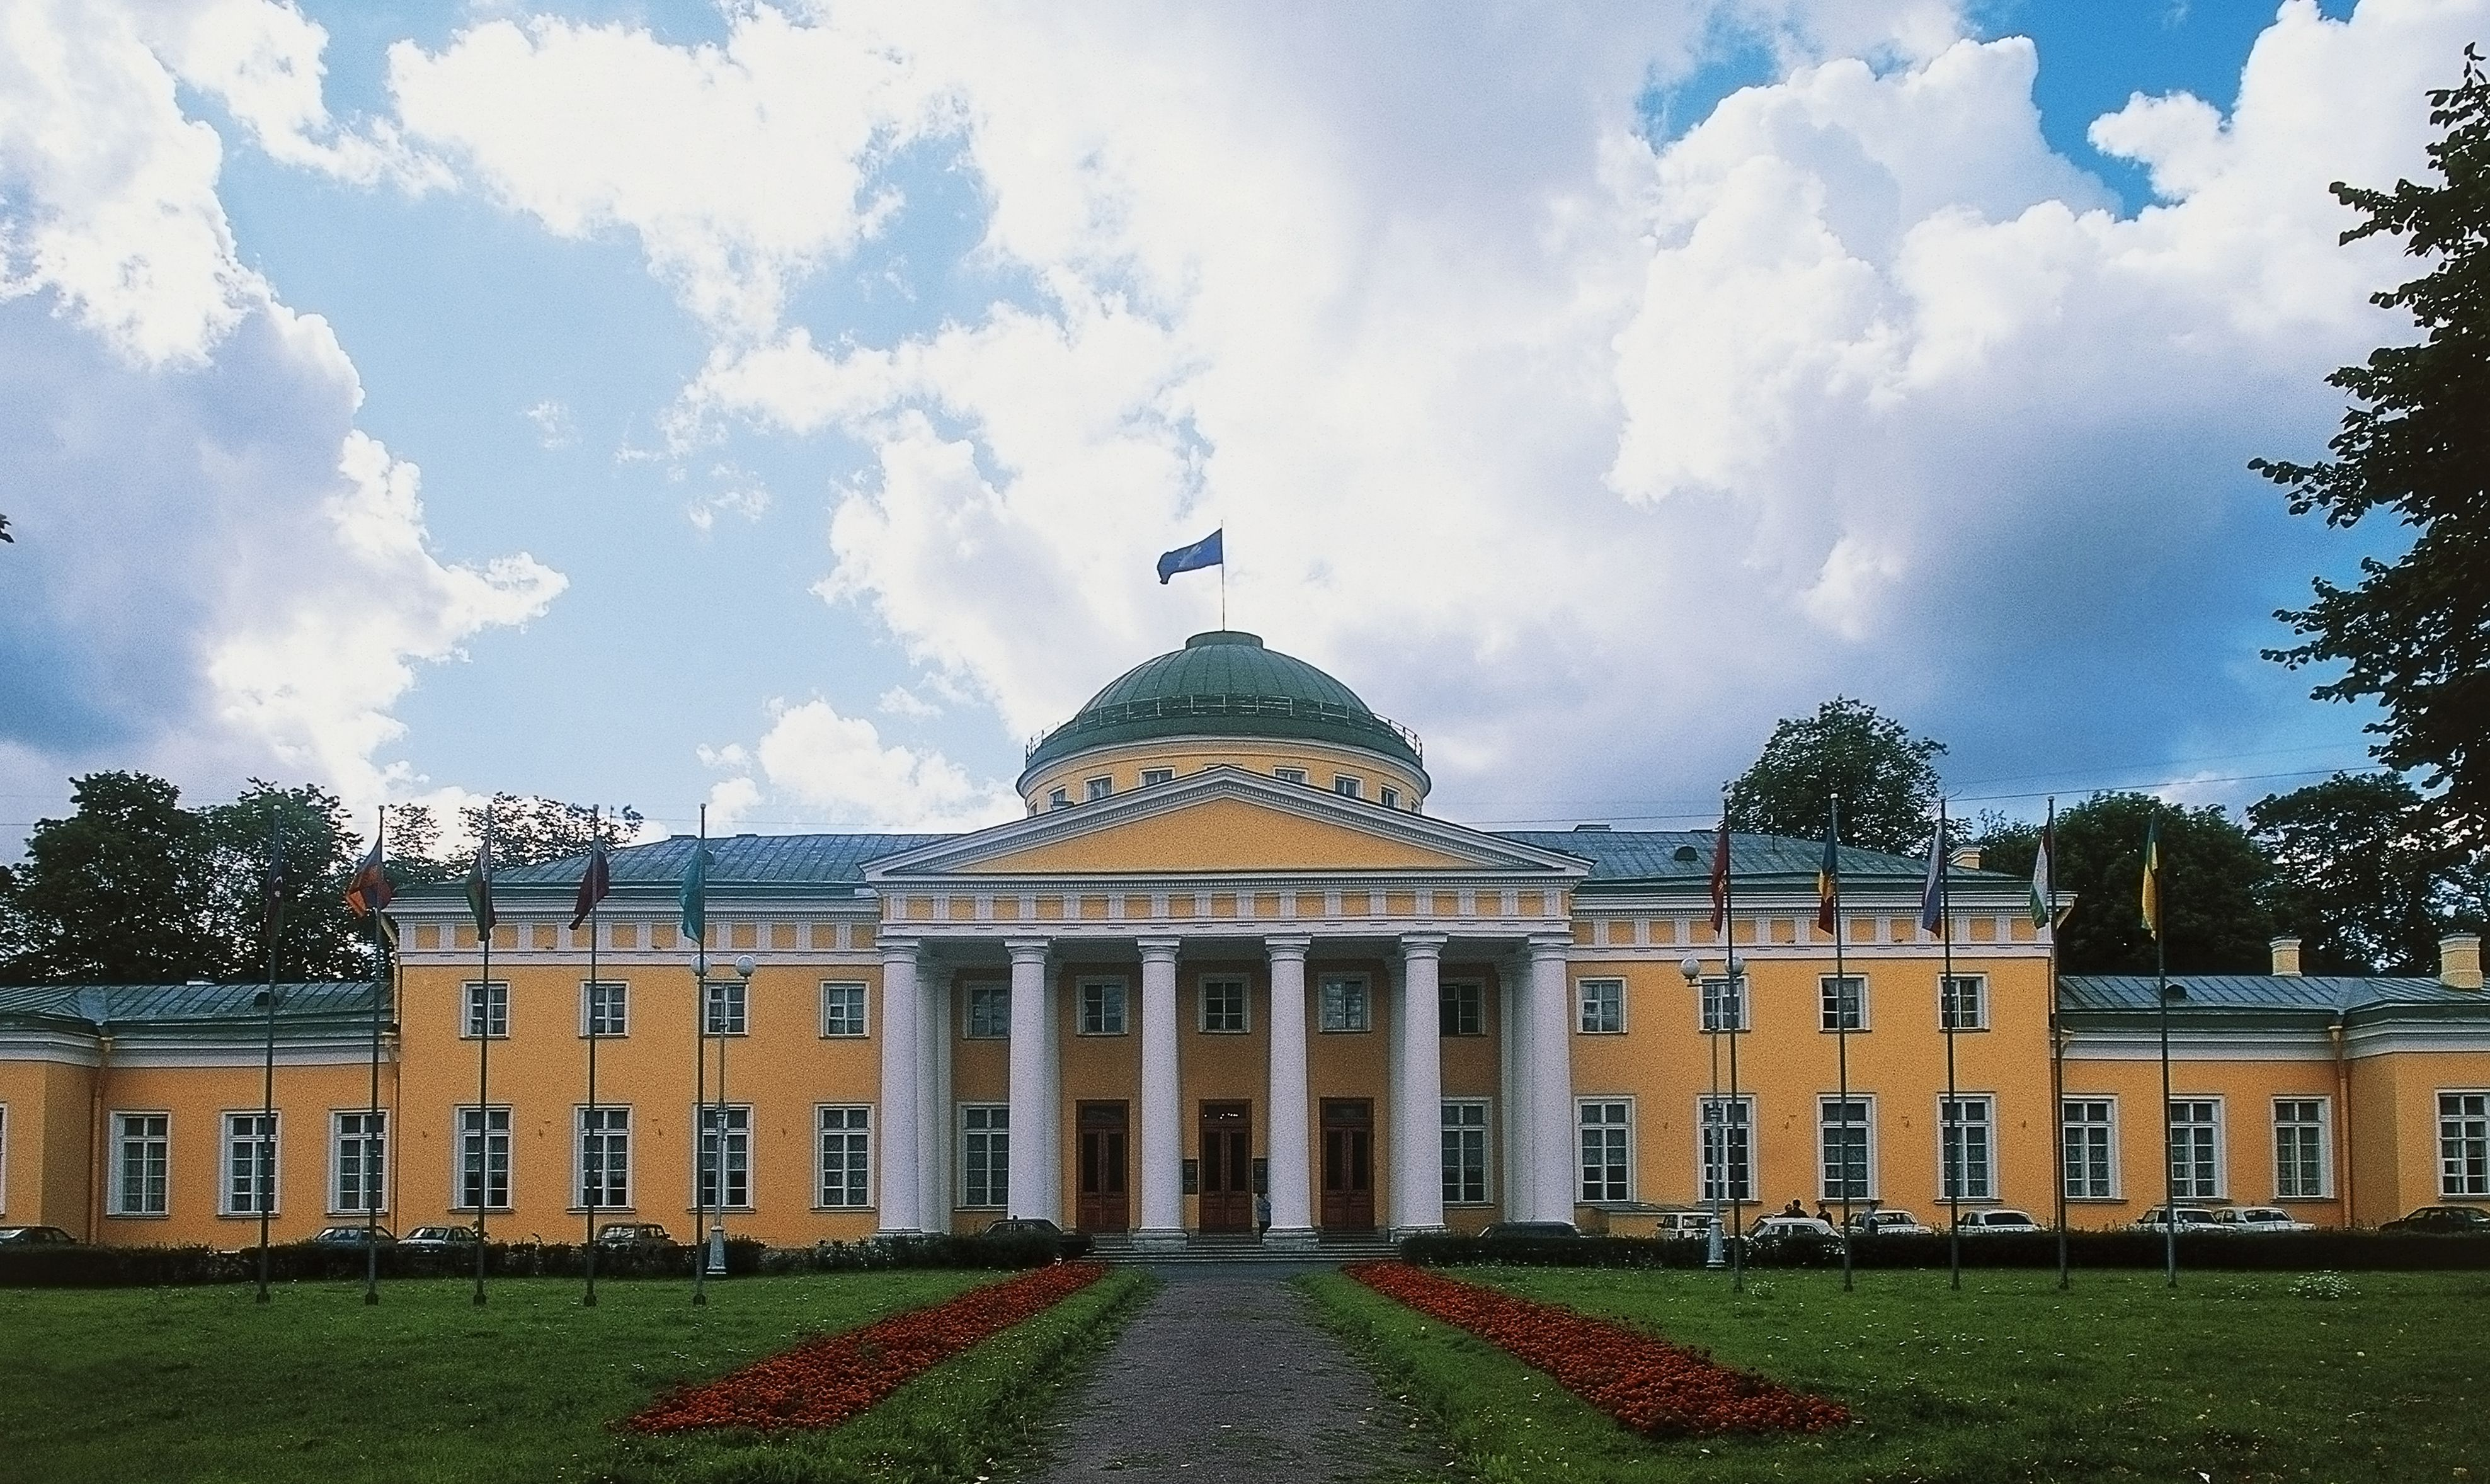 horizontal-orientation palace, yellowish facade, central columns with pediment and dome